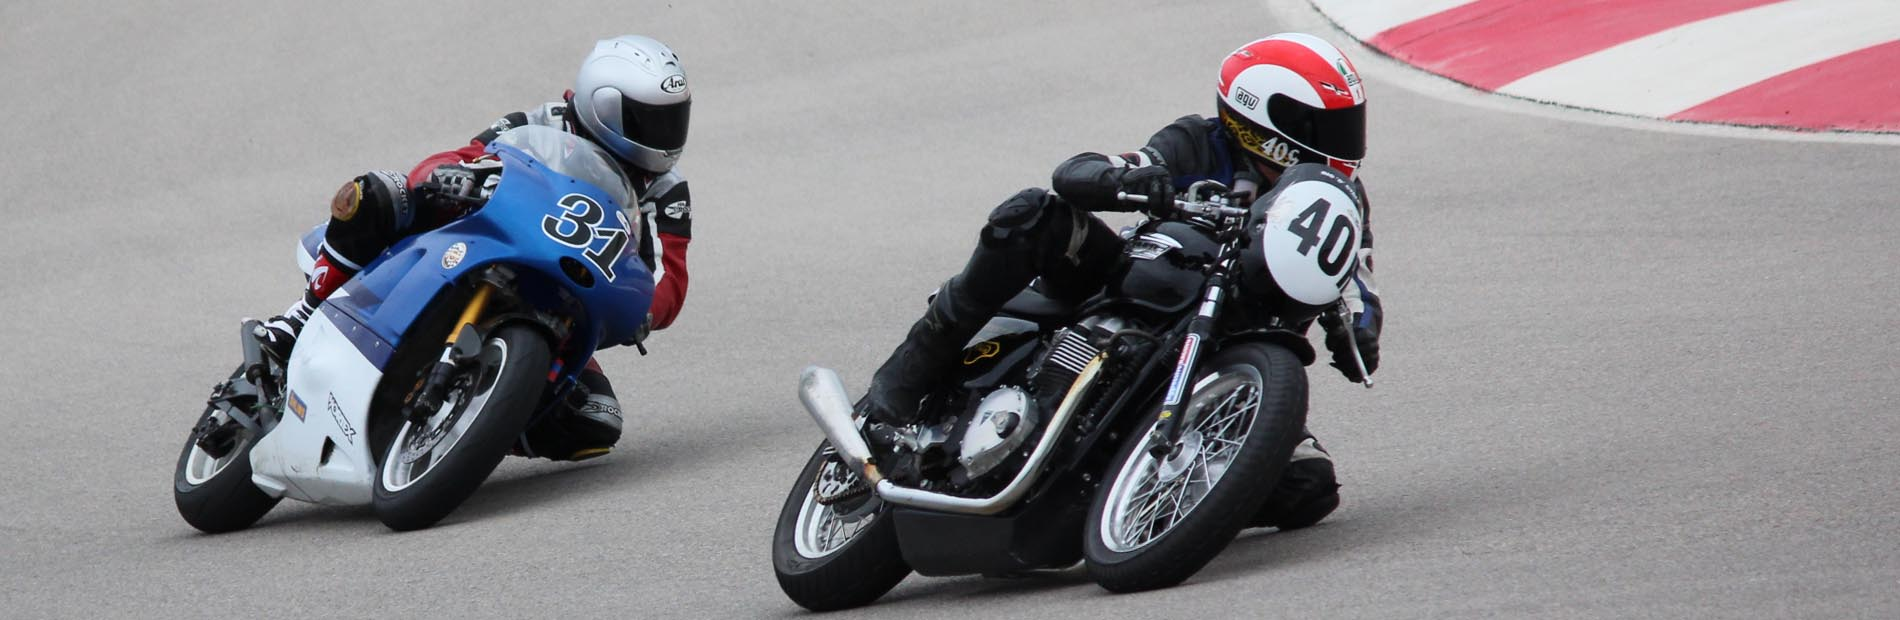 The 2019 Bonneville Vintage GP